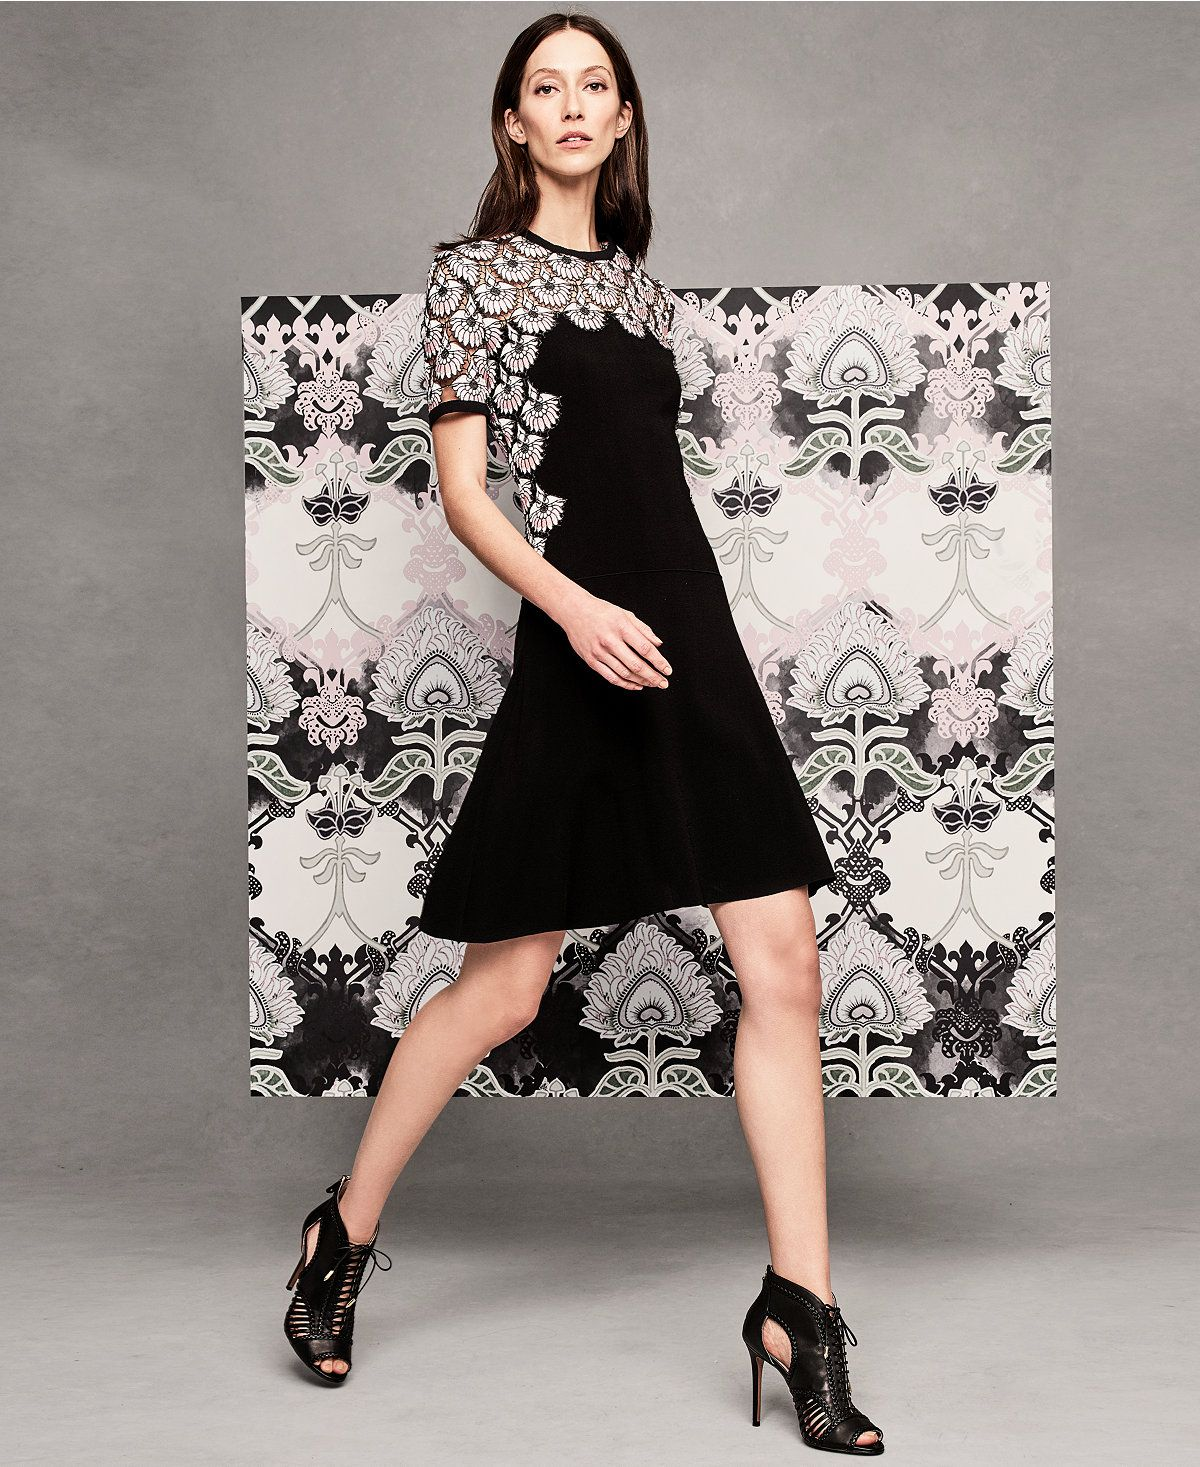 Lace dress macys  YYIGAL LaceContrast Fit u Flare Dress a Macyus Exclusive Style